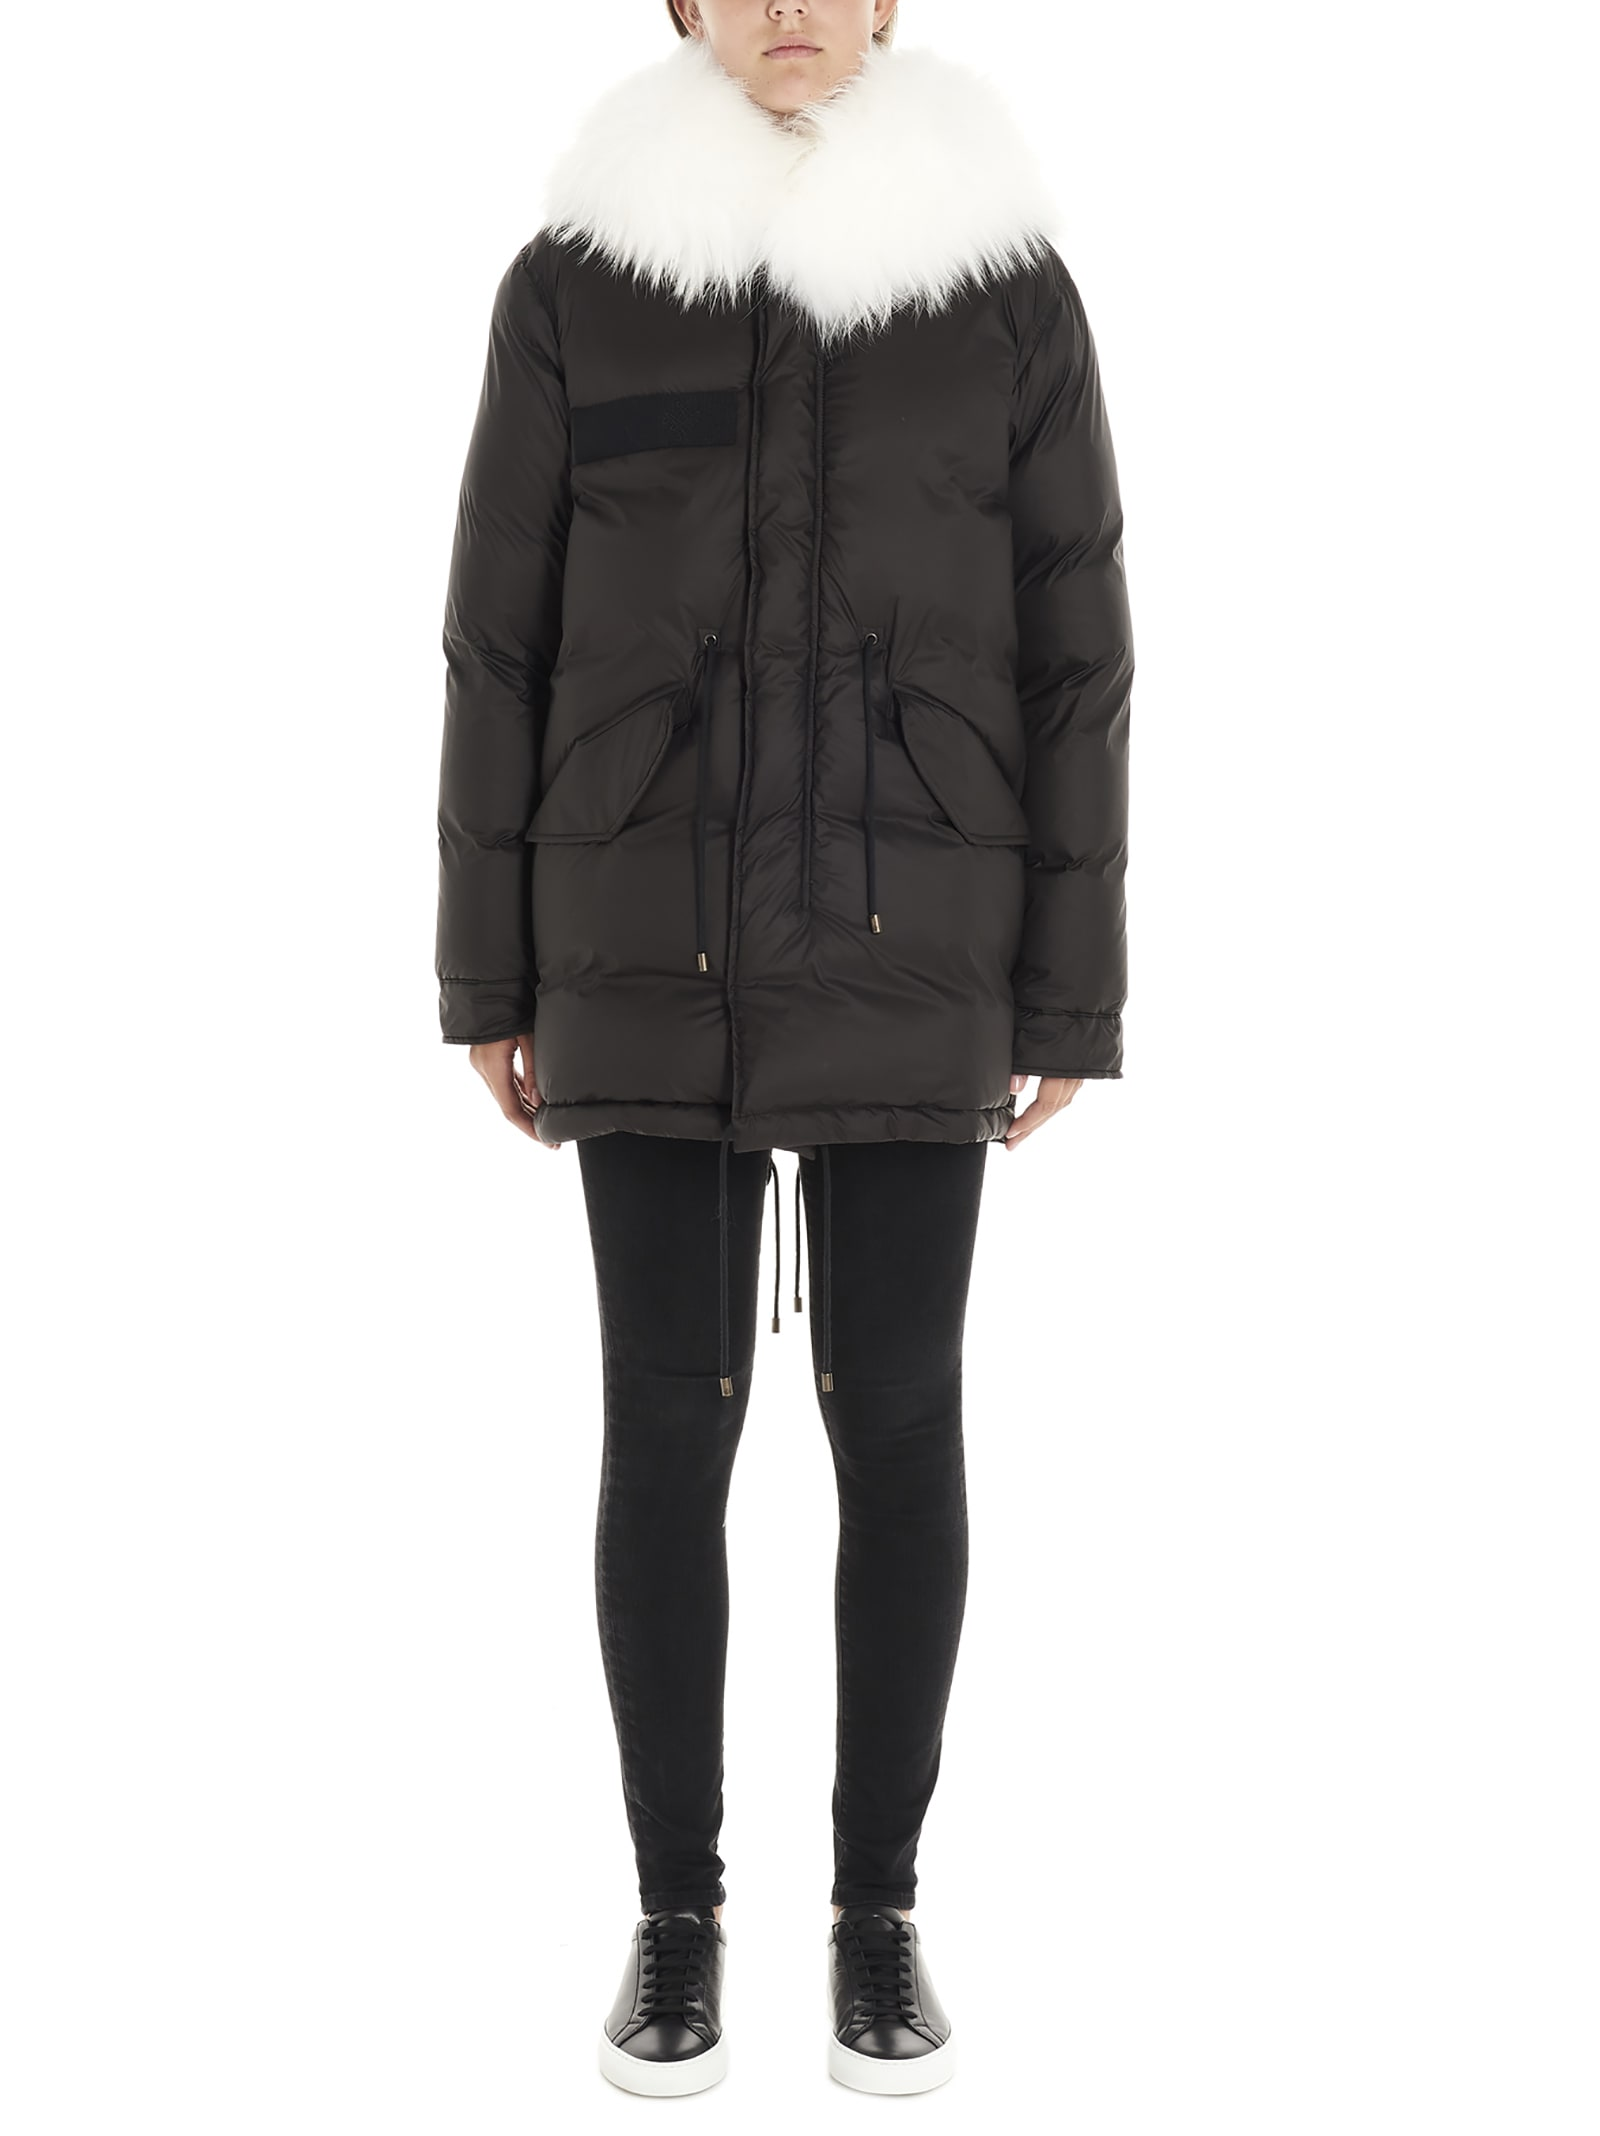 Mr & Mrs Italy parka Puffer Jacket